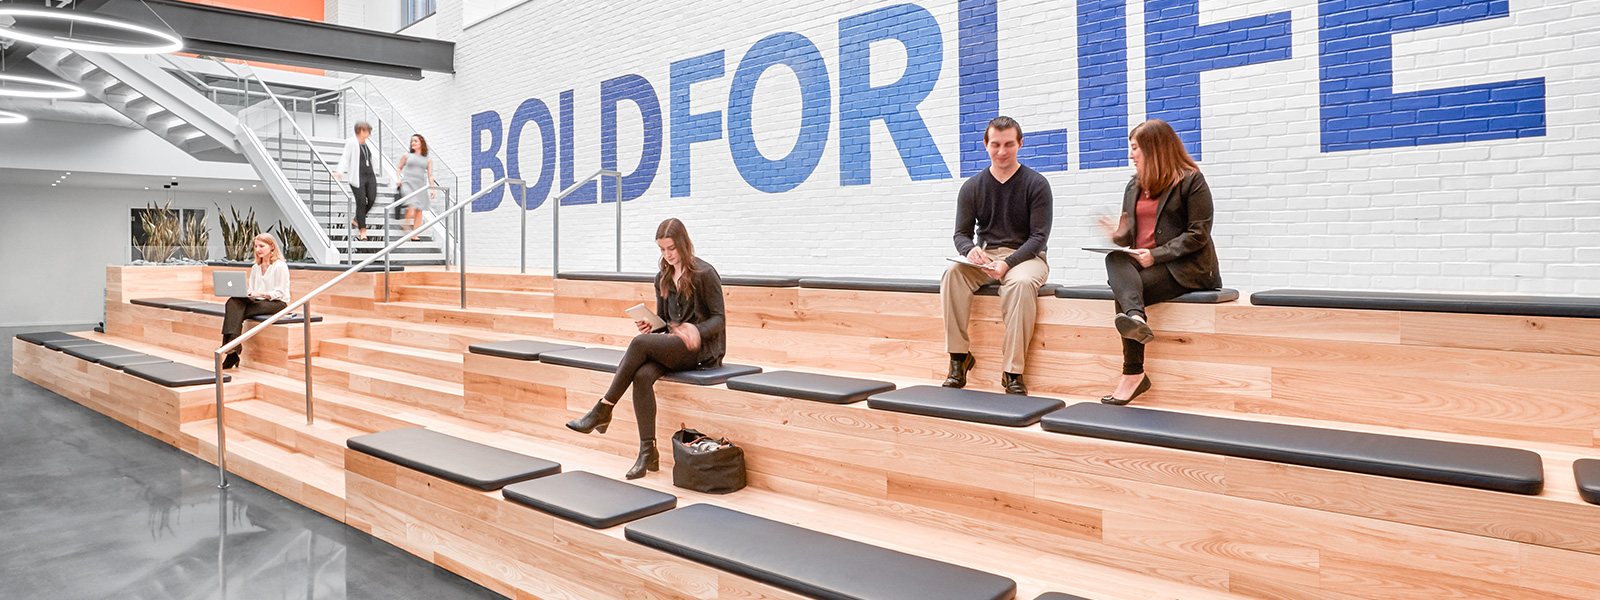 Bold for life HQ